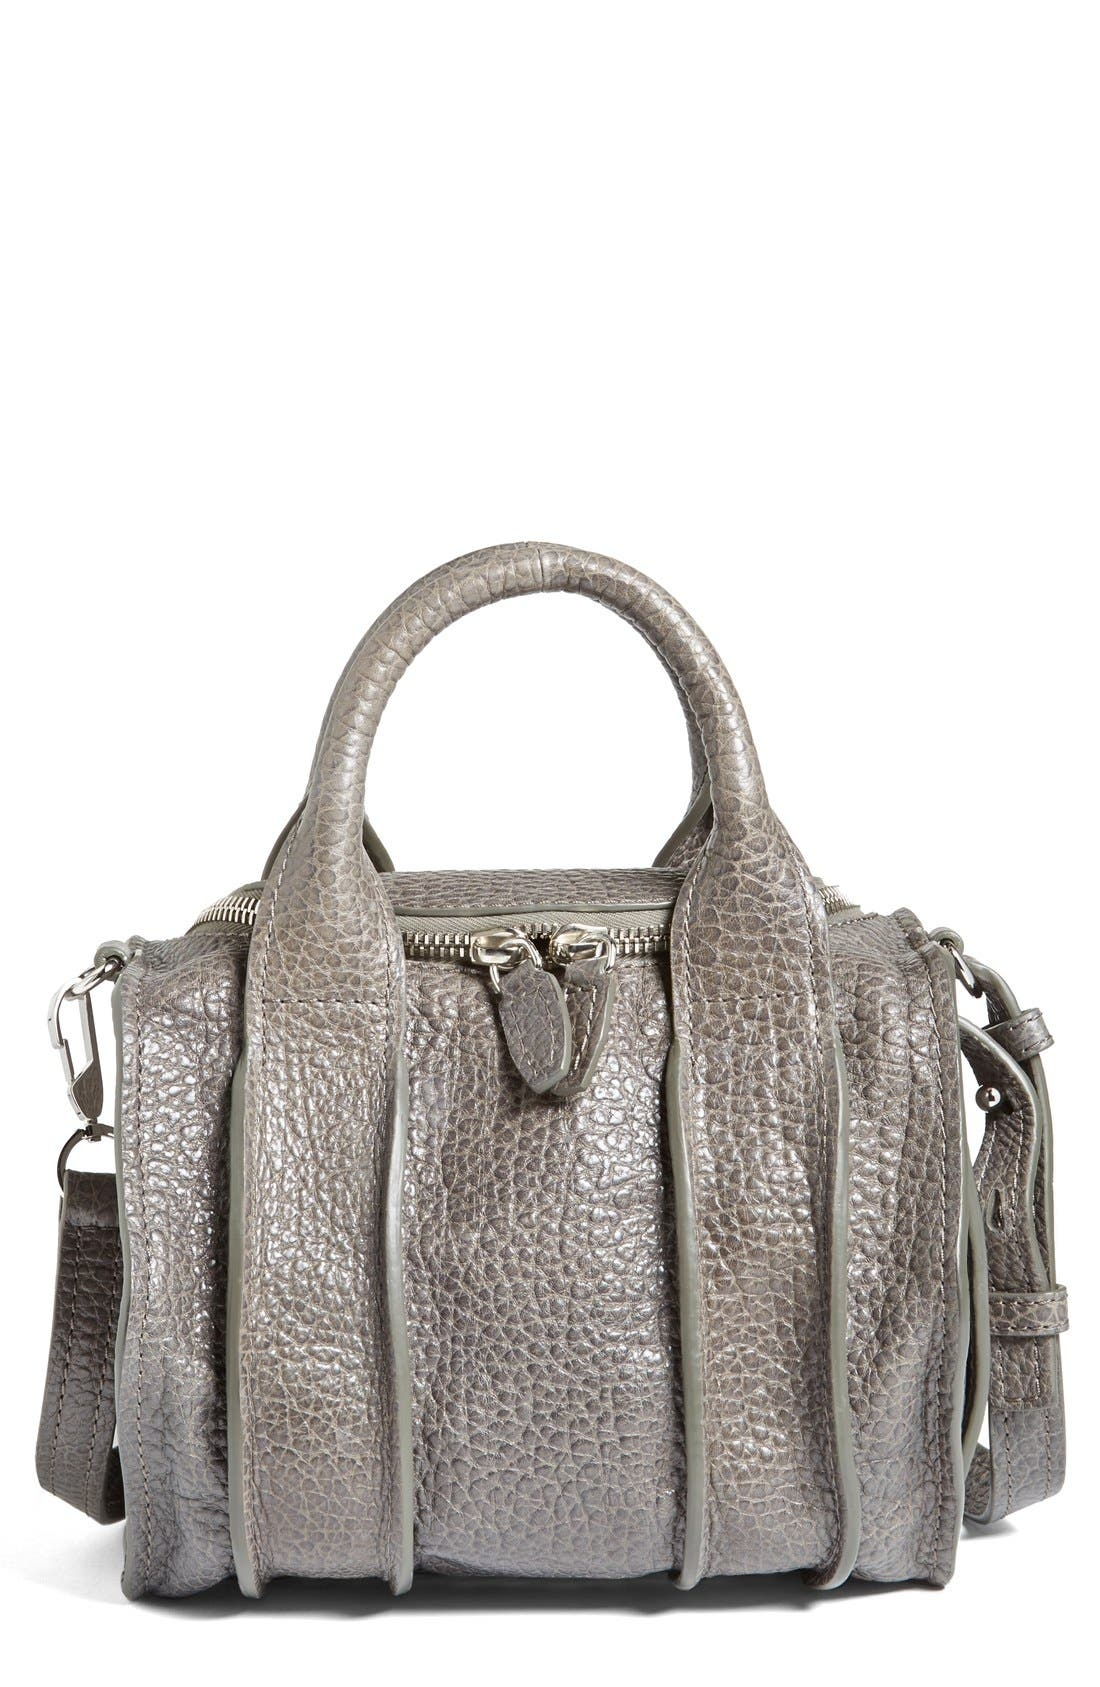 Main Image - Alexander Wang 'Rockie - Inside Out' Leather Crossbody Satchel